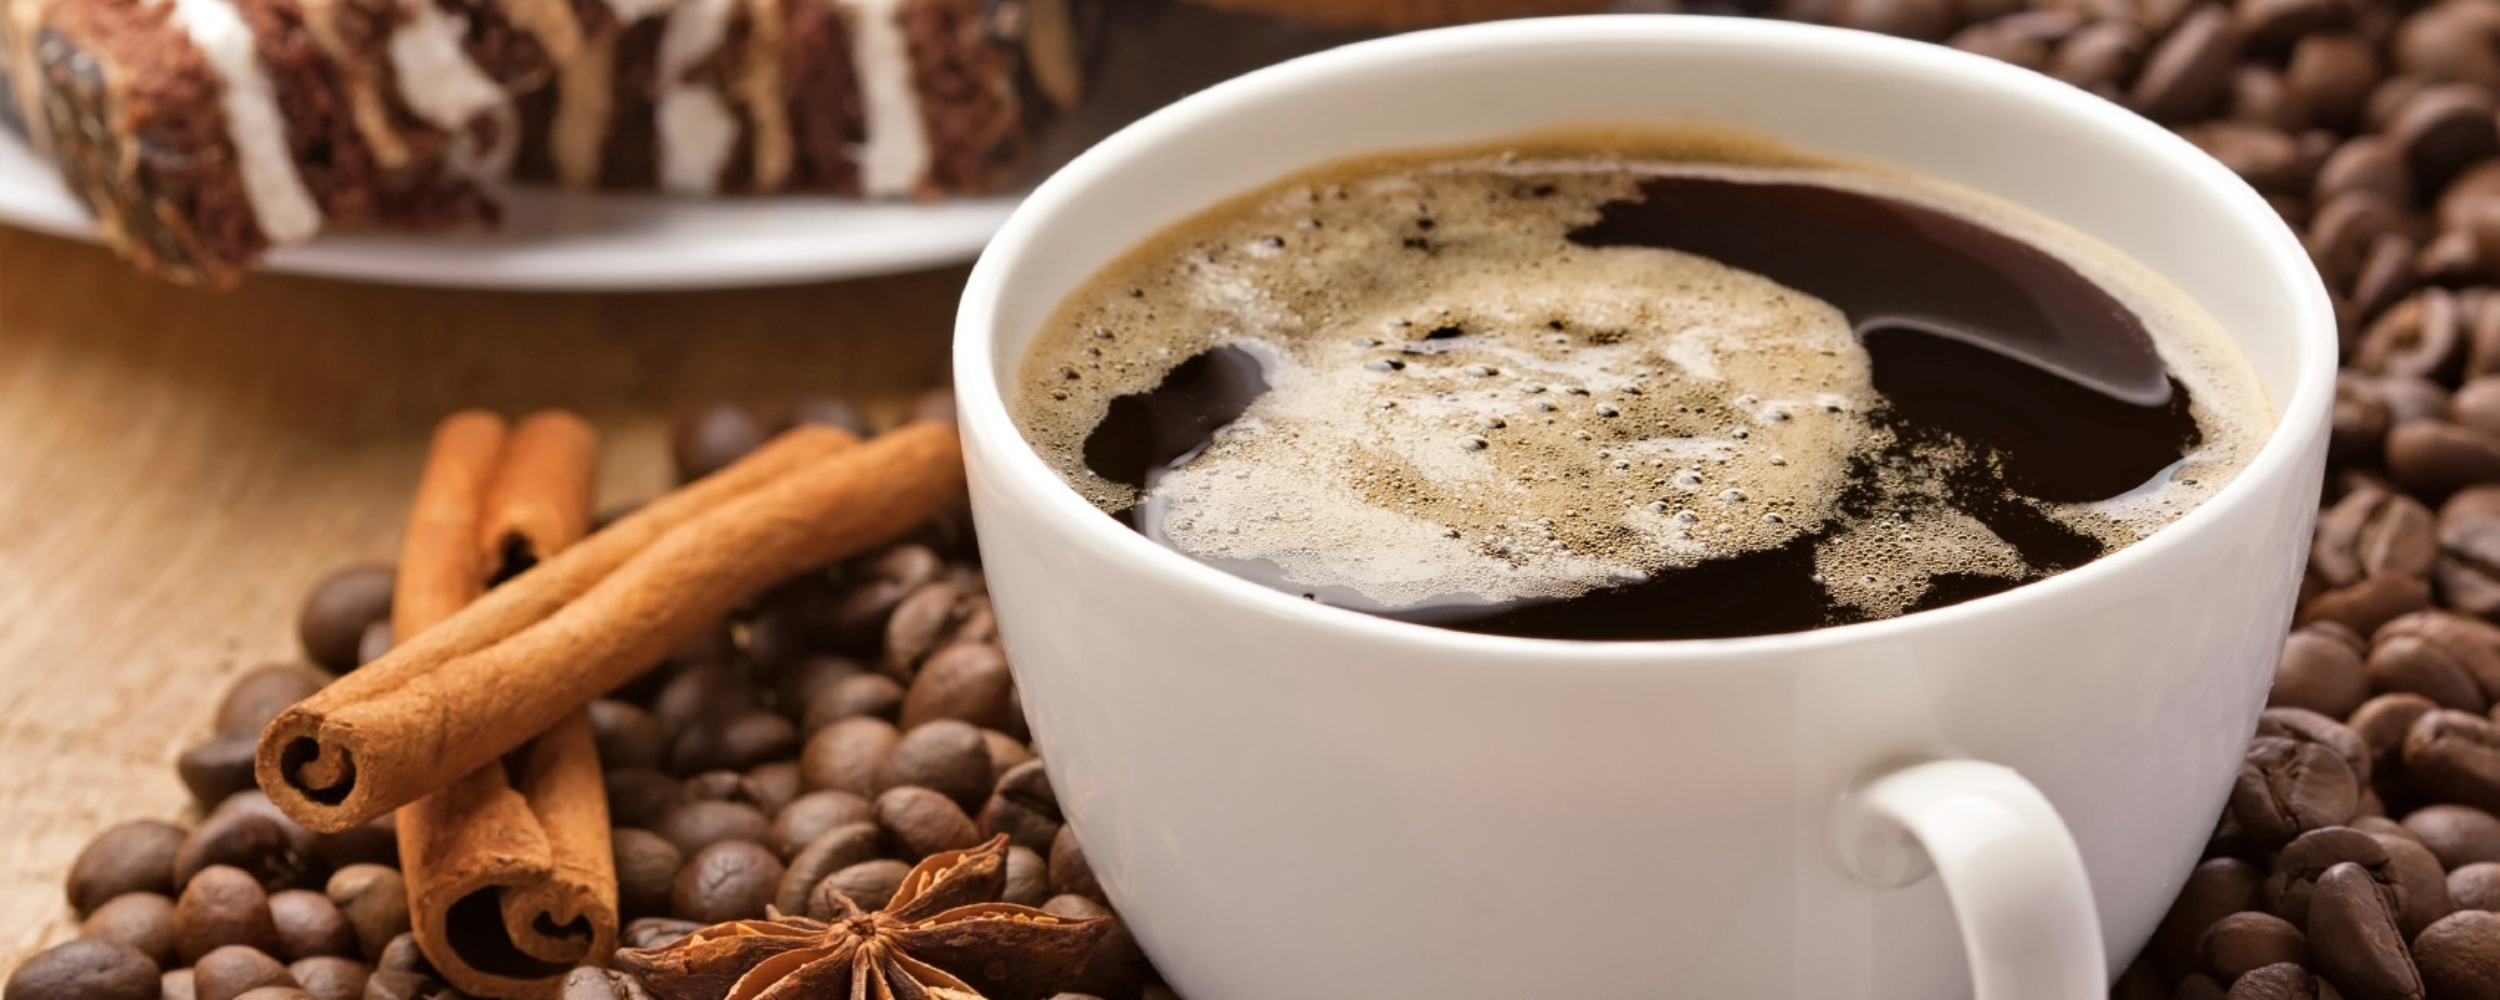 Coffee cup, cinnamon, anise on coffee beans, sweets on the background